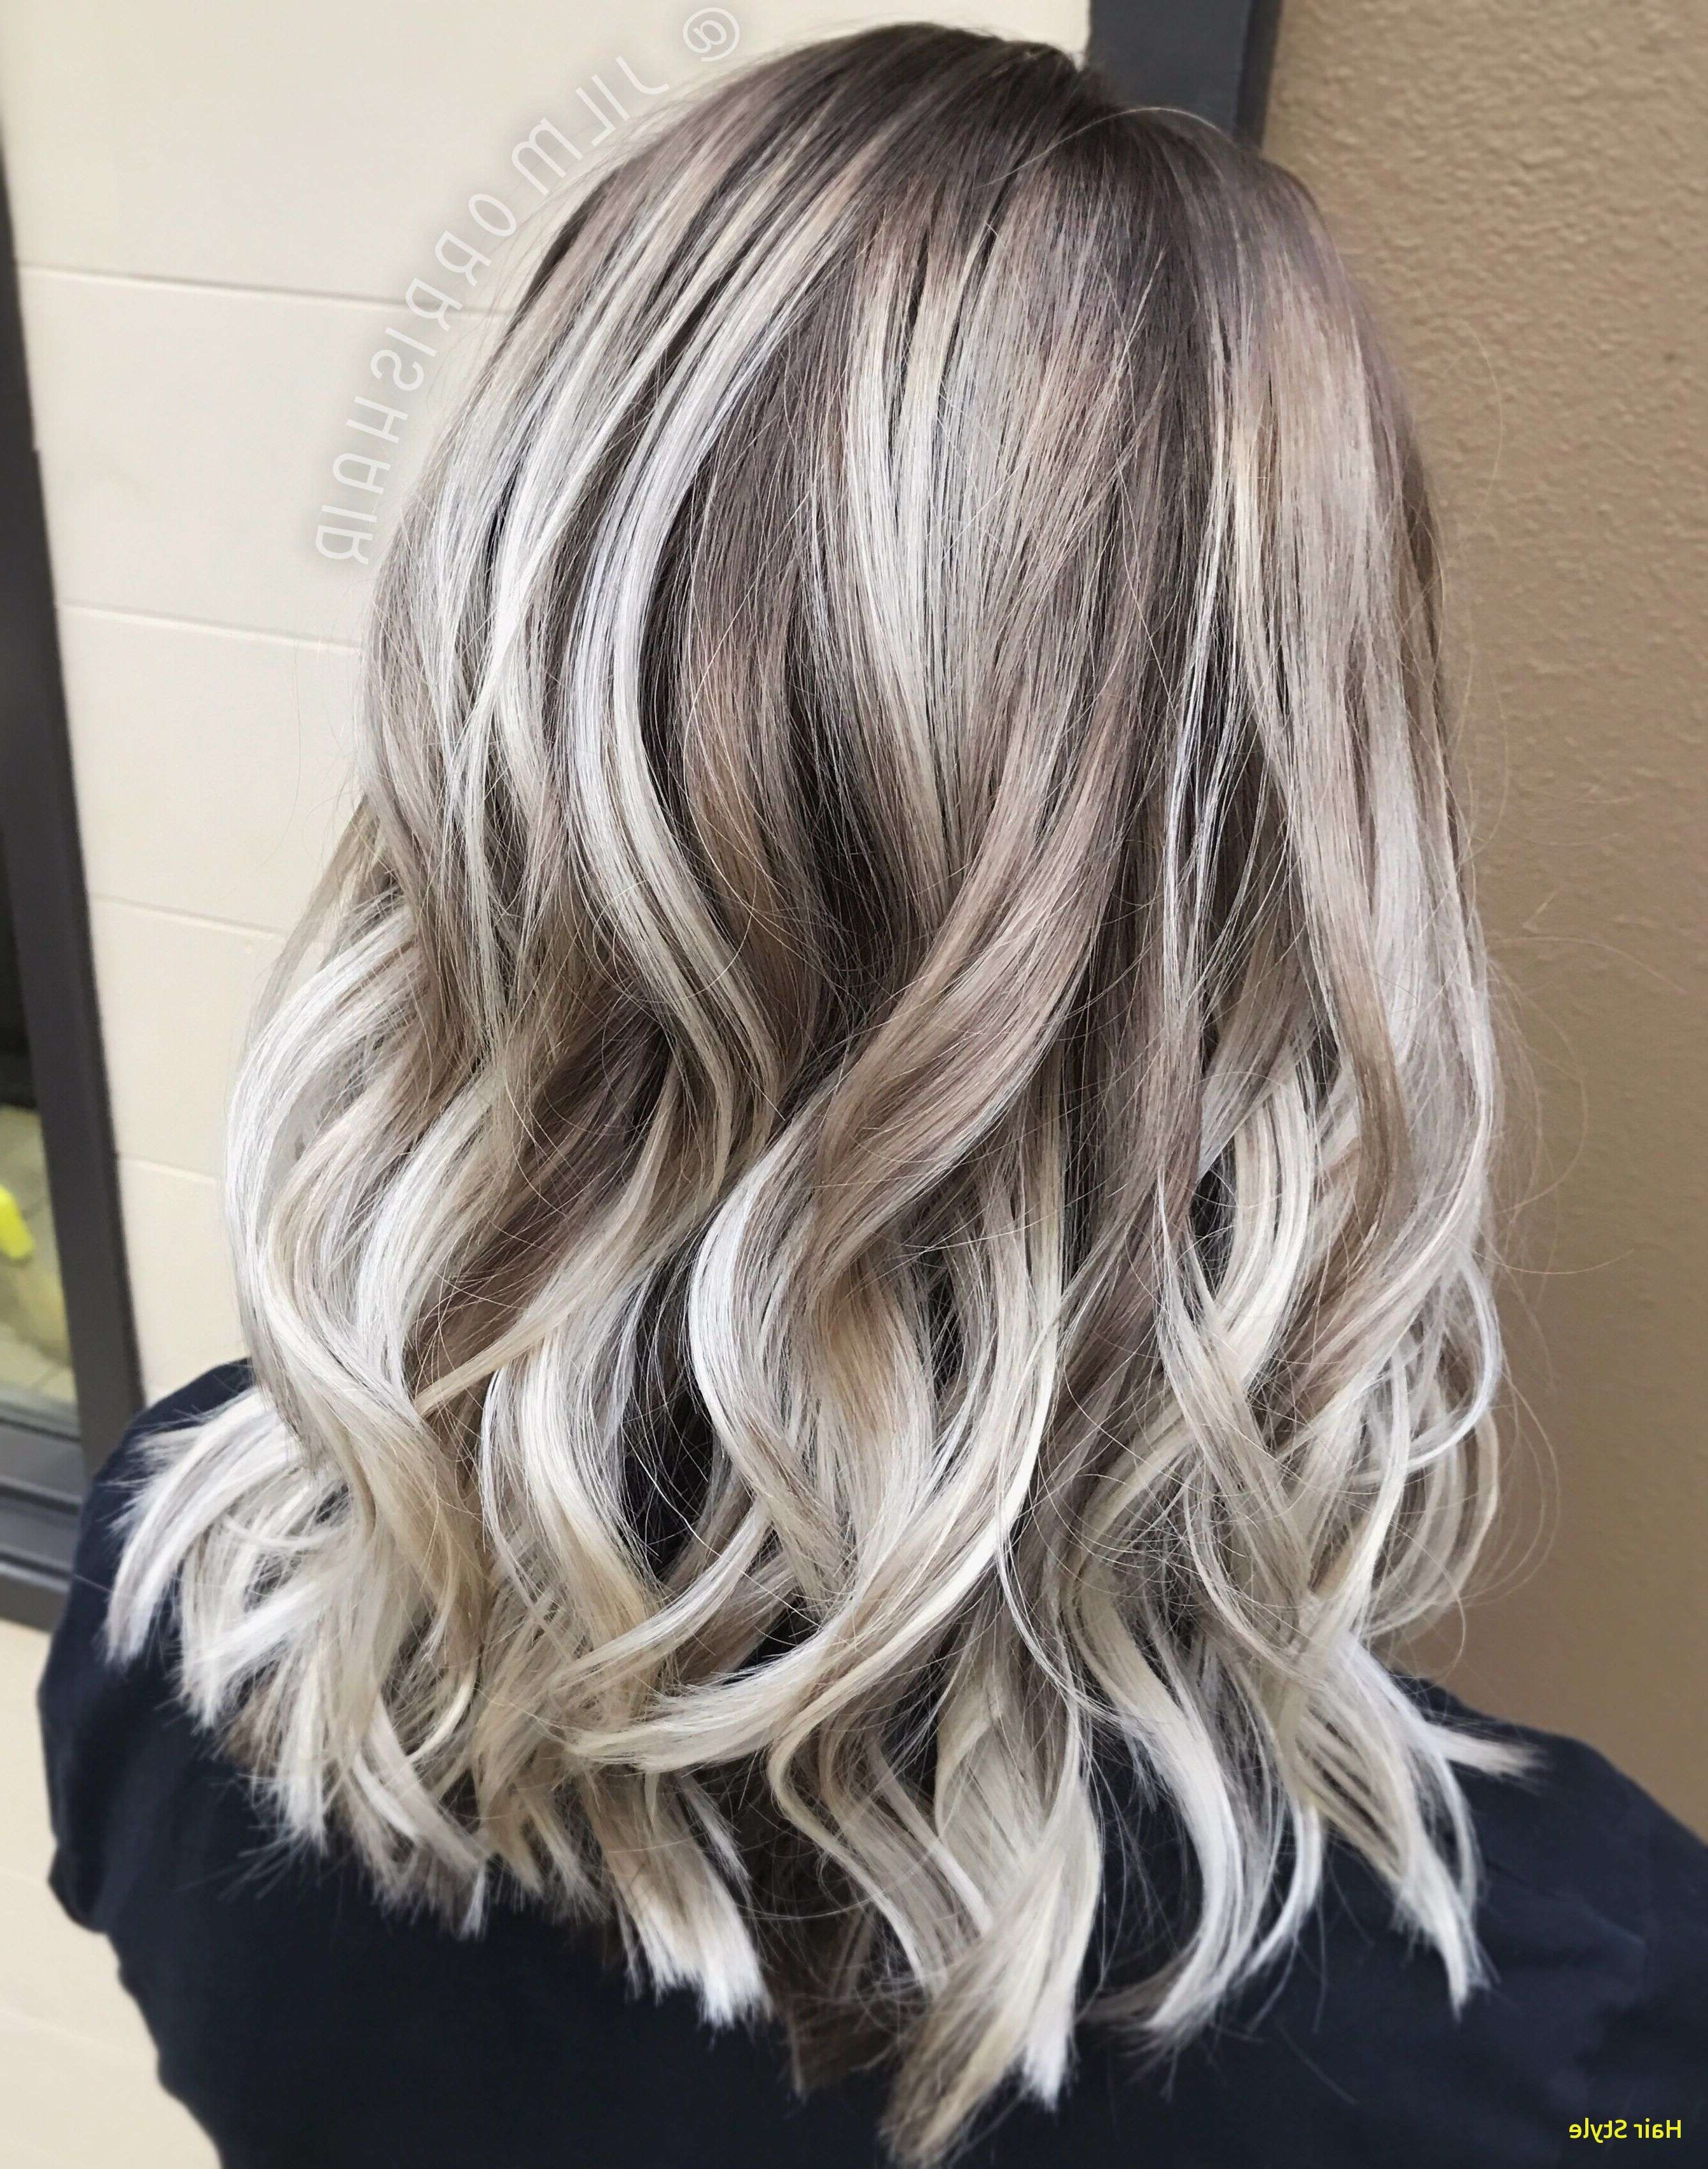 2018 Dirty Blonde Balayage Babylights Hairstyles In Blonde Highlights With Dark Roots New White Ash Blonde Balayage (View 10 of 20)